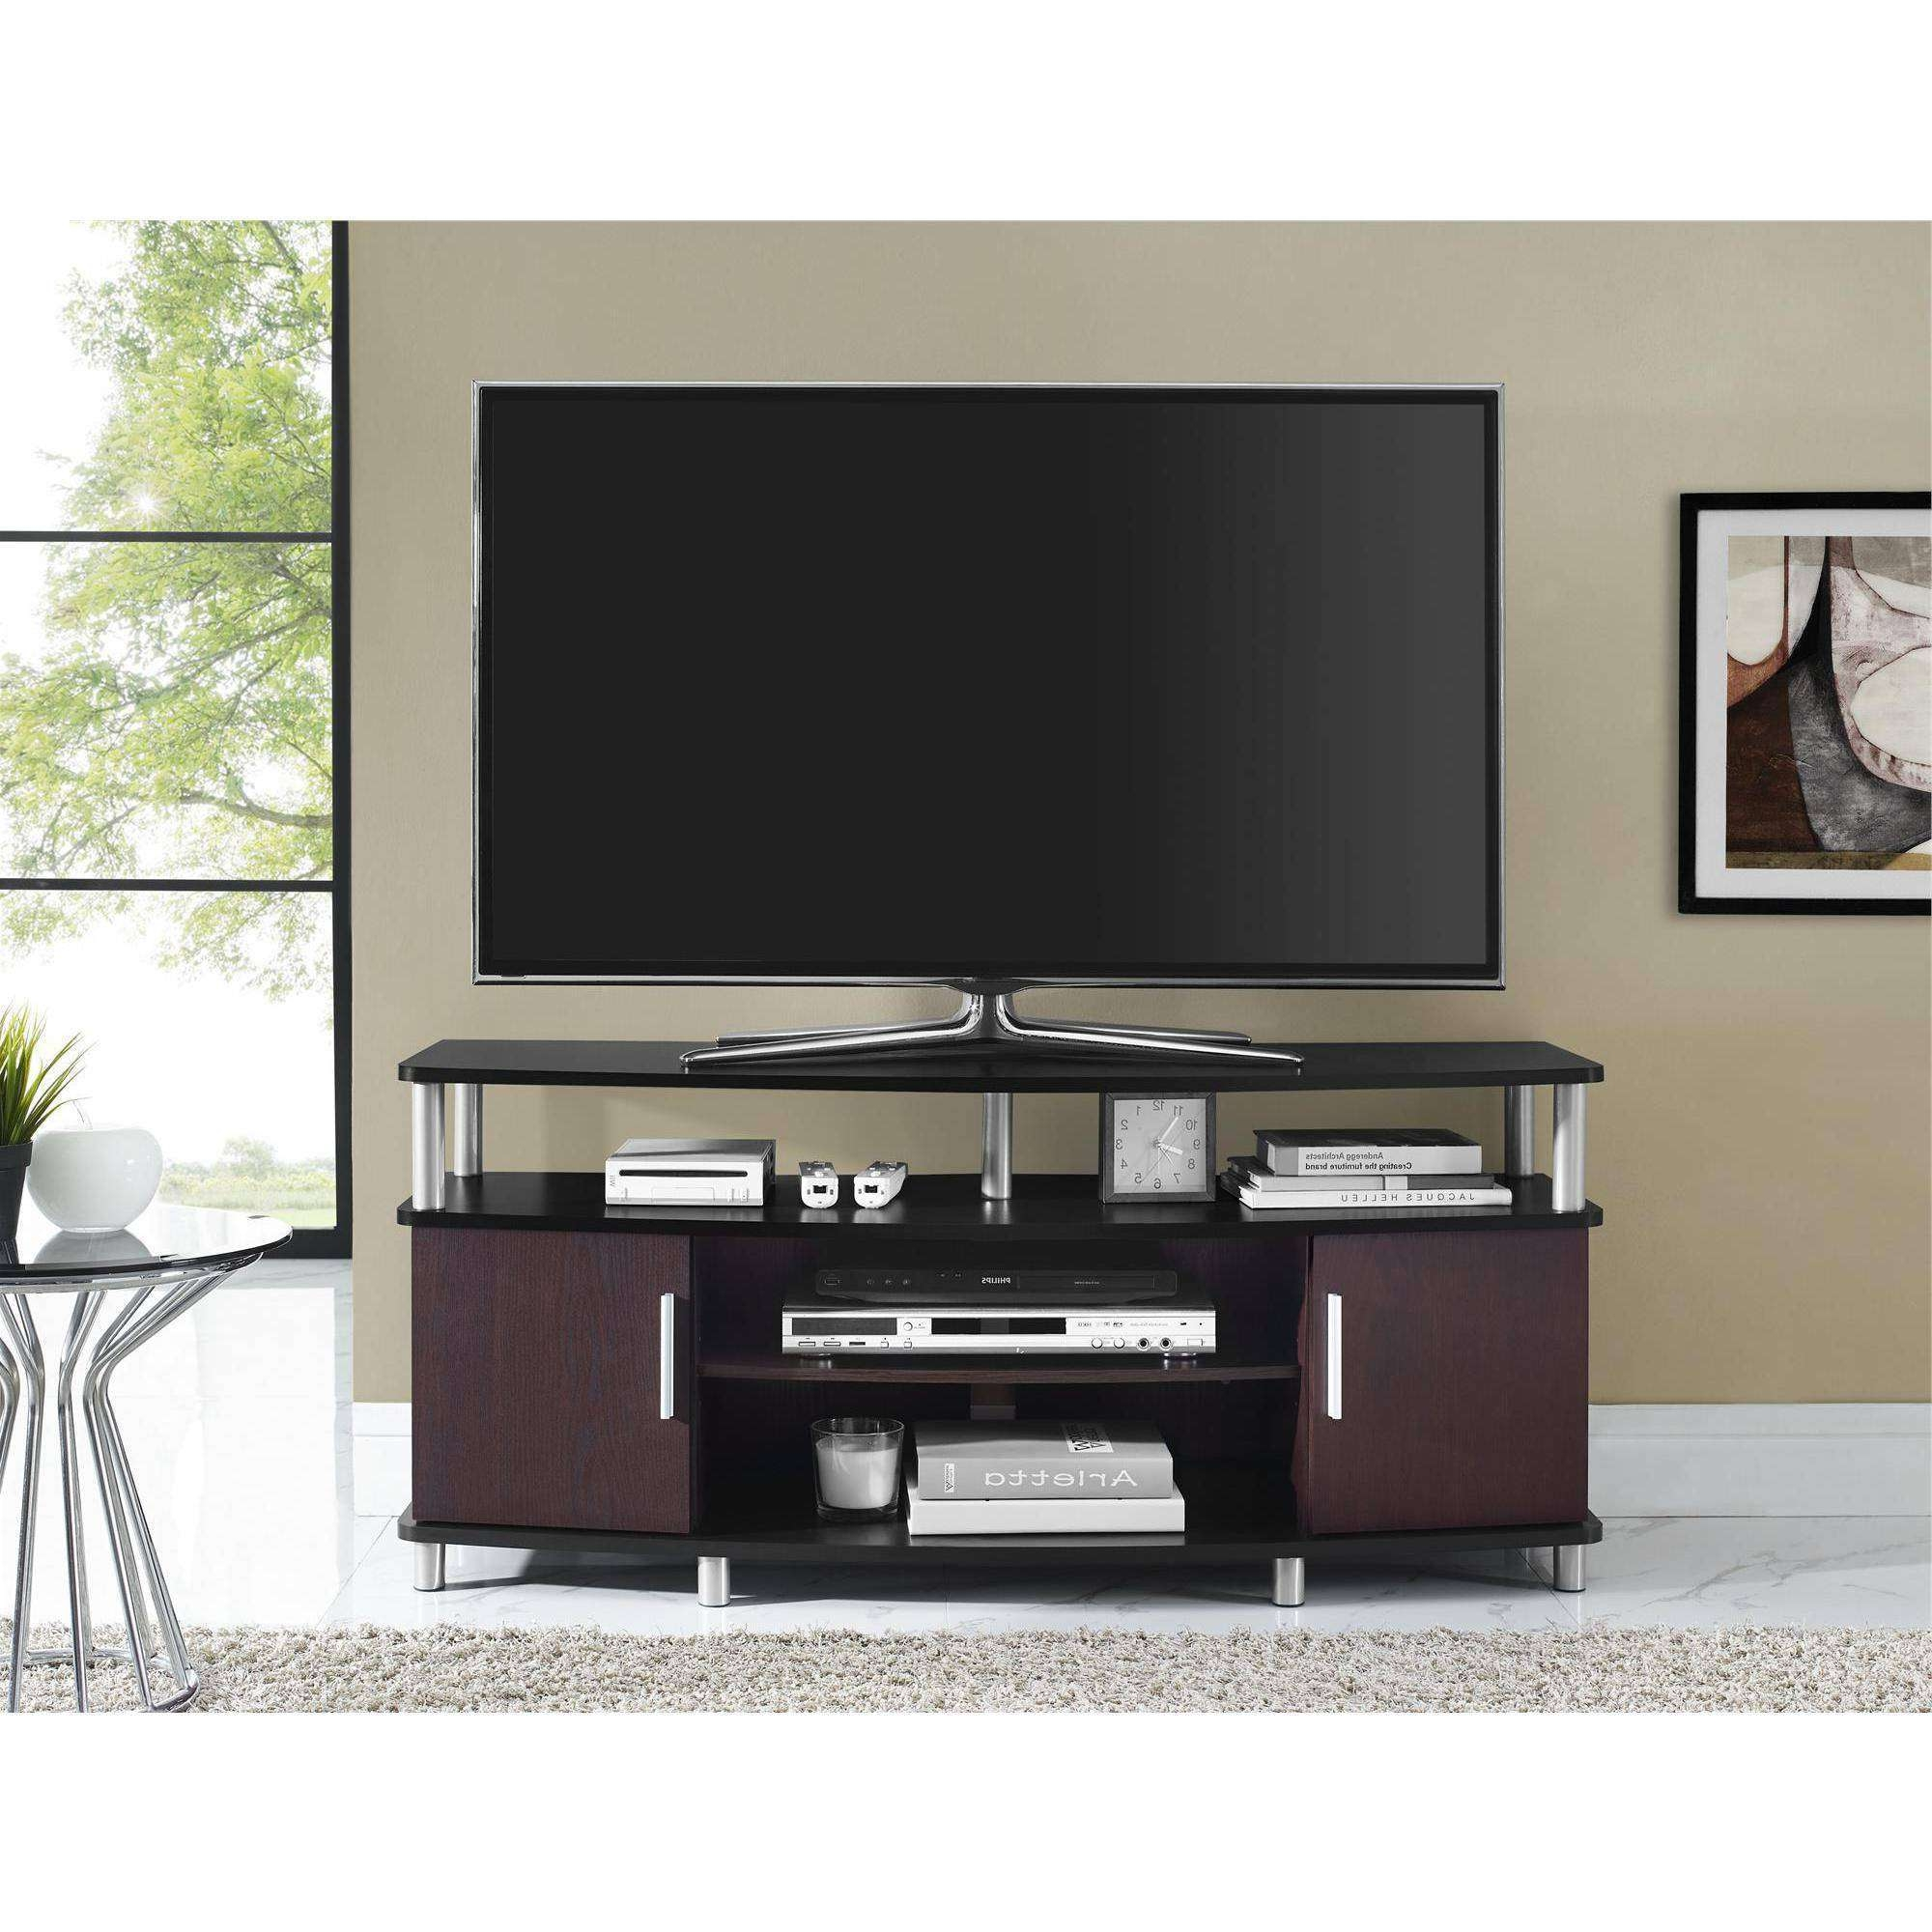 Flat Screen Tv Stands With Mount Furnitures Modern For Inch In Modern Tv Stands For 60 Inch Tvs (View 6 of 15)